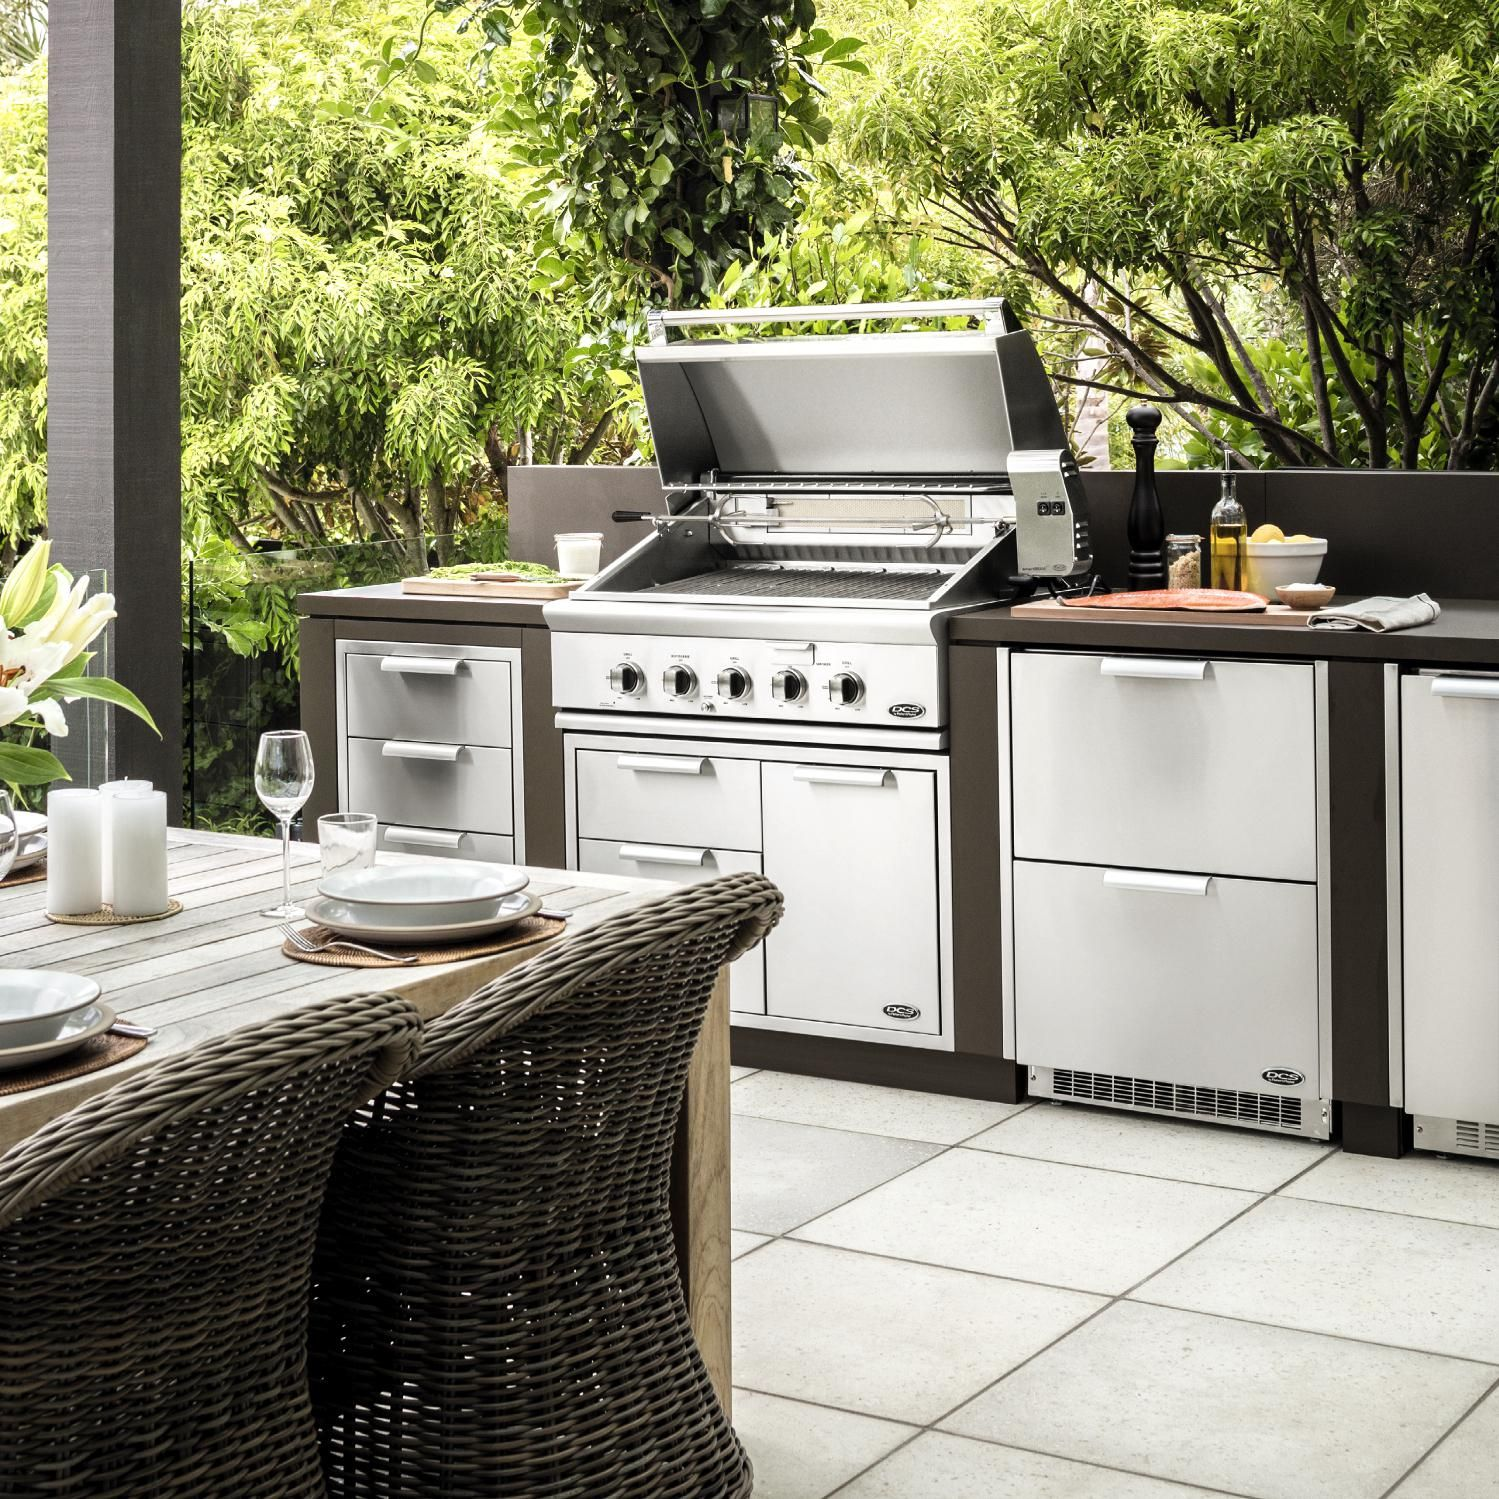 Dcs Series 7 Traditional 36 Inch Built In Natural Gas Grill With Rotisserie Bh1 36r N Outdoor Kitchen Plans Outdoor Kitchen Design Built In Gas Grills